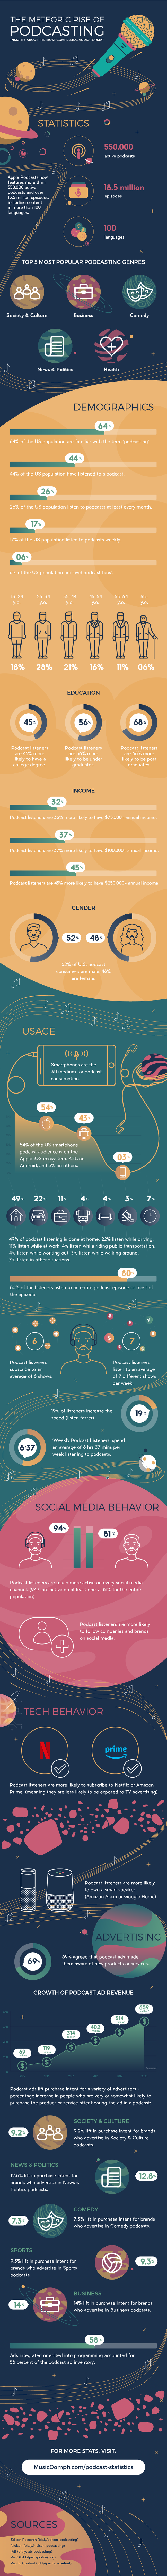 meteoric rise of podcasts